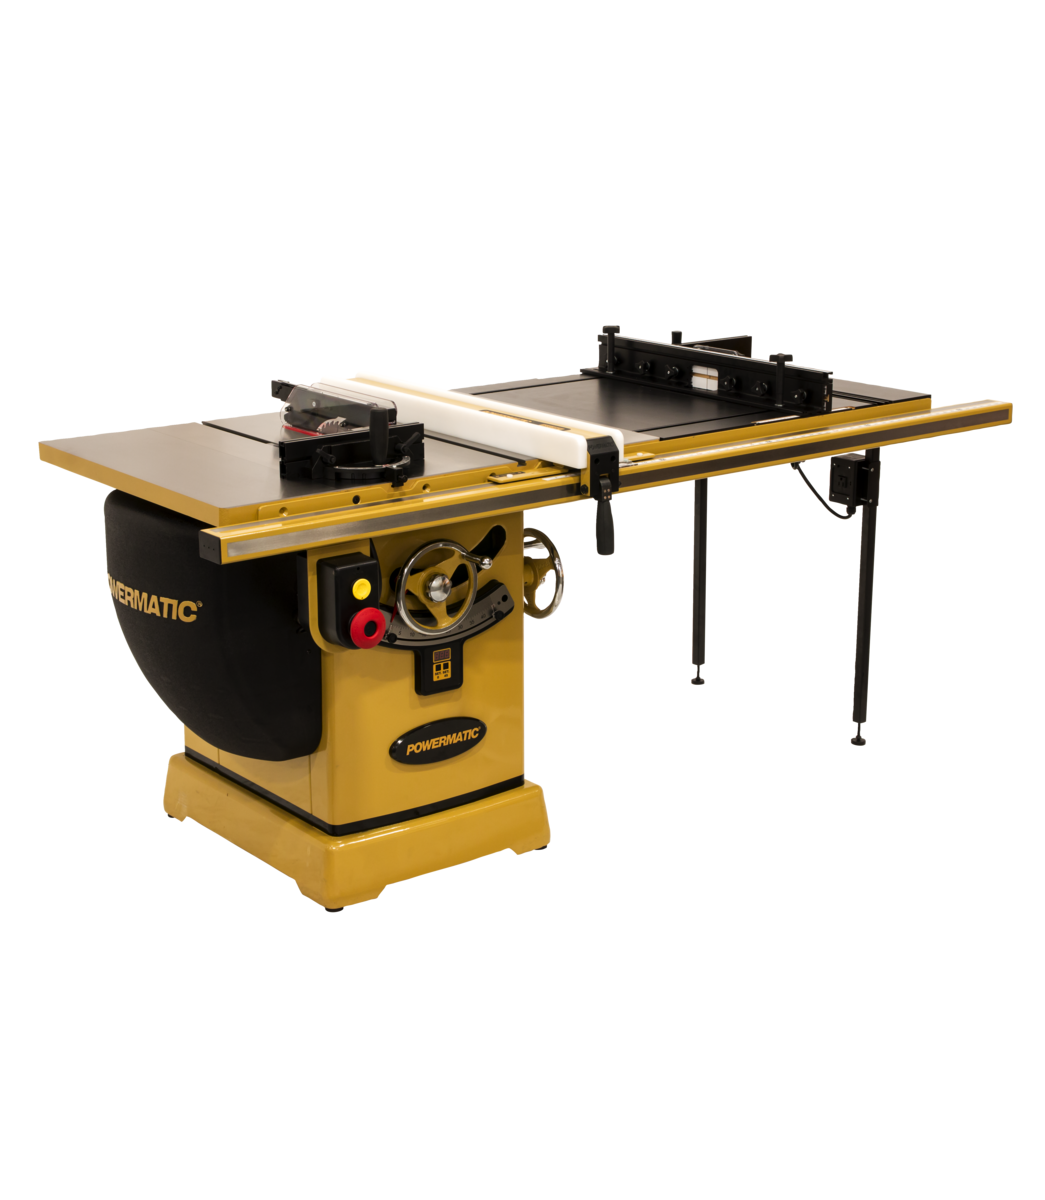 """2000B table saw - 5HP 1PH 230V 50"""" RIP w/Accu-Fence & Router Lift"""